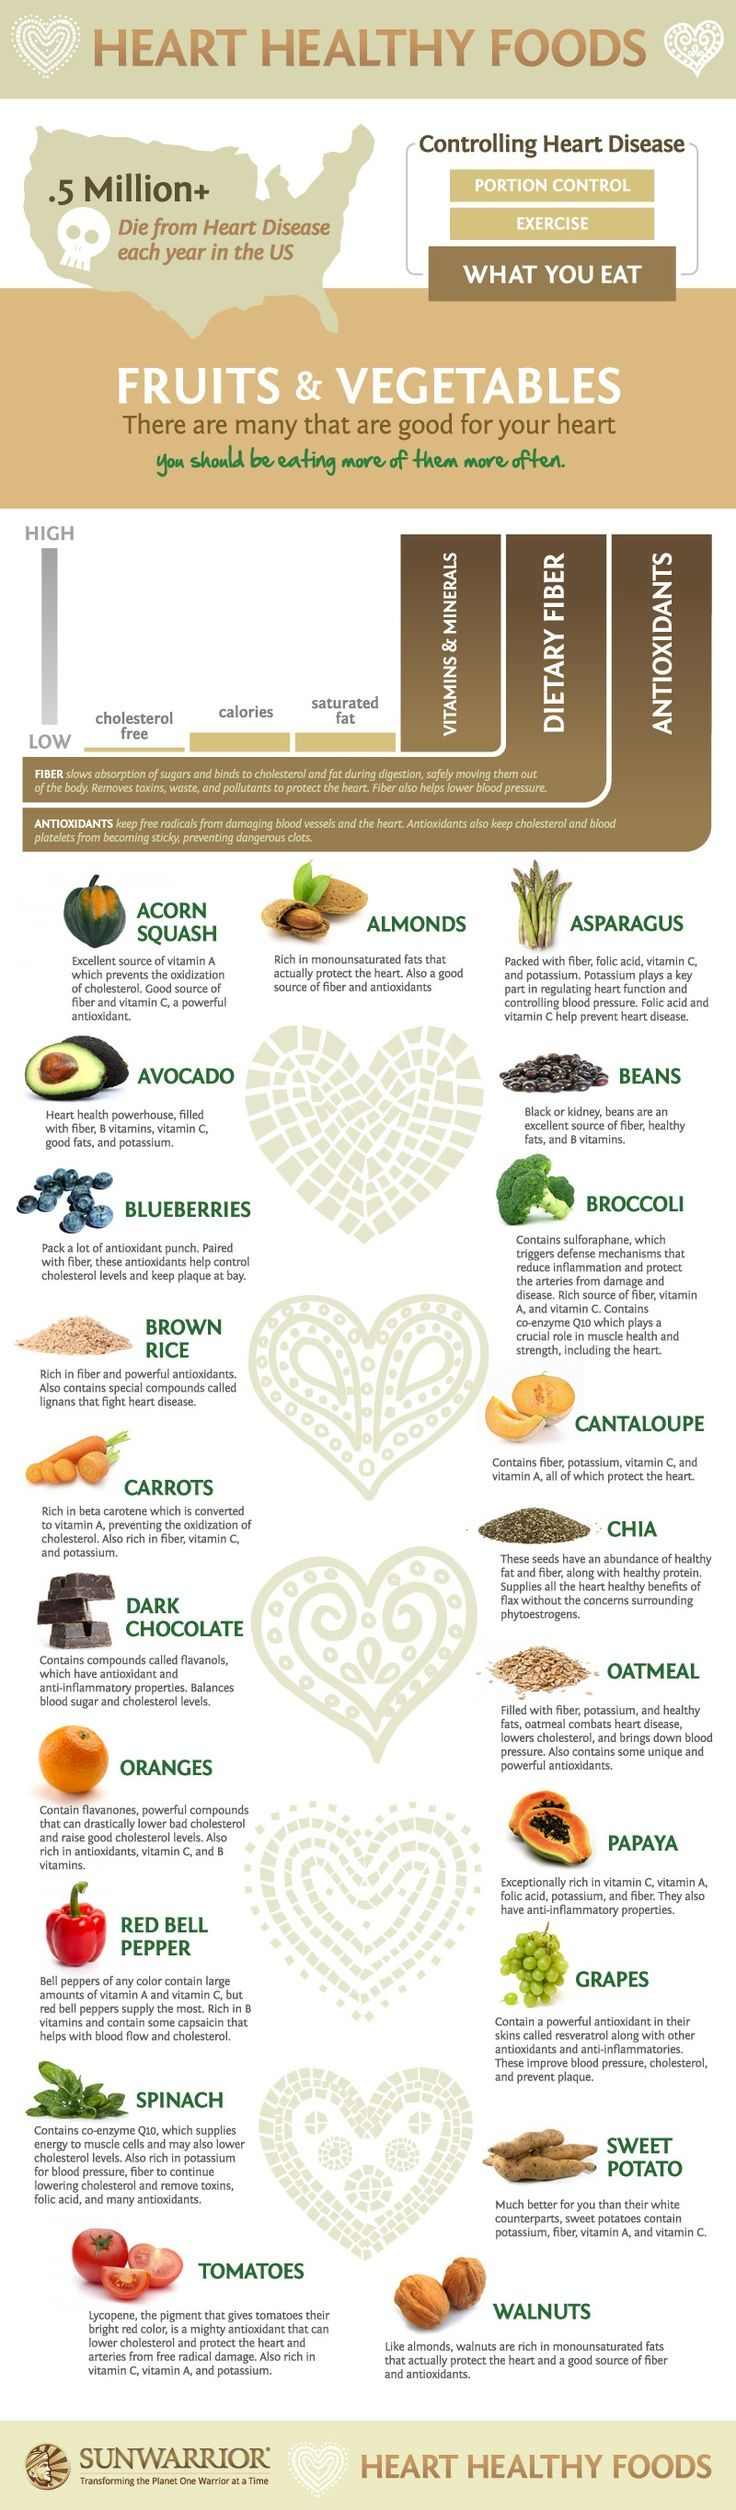 Good list of the benefits of some (not all) fruits and vegetables.